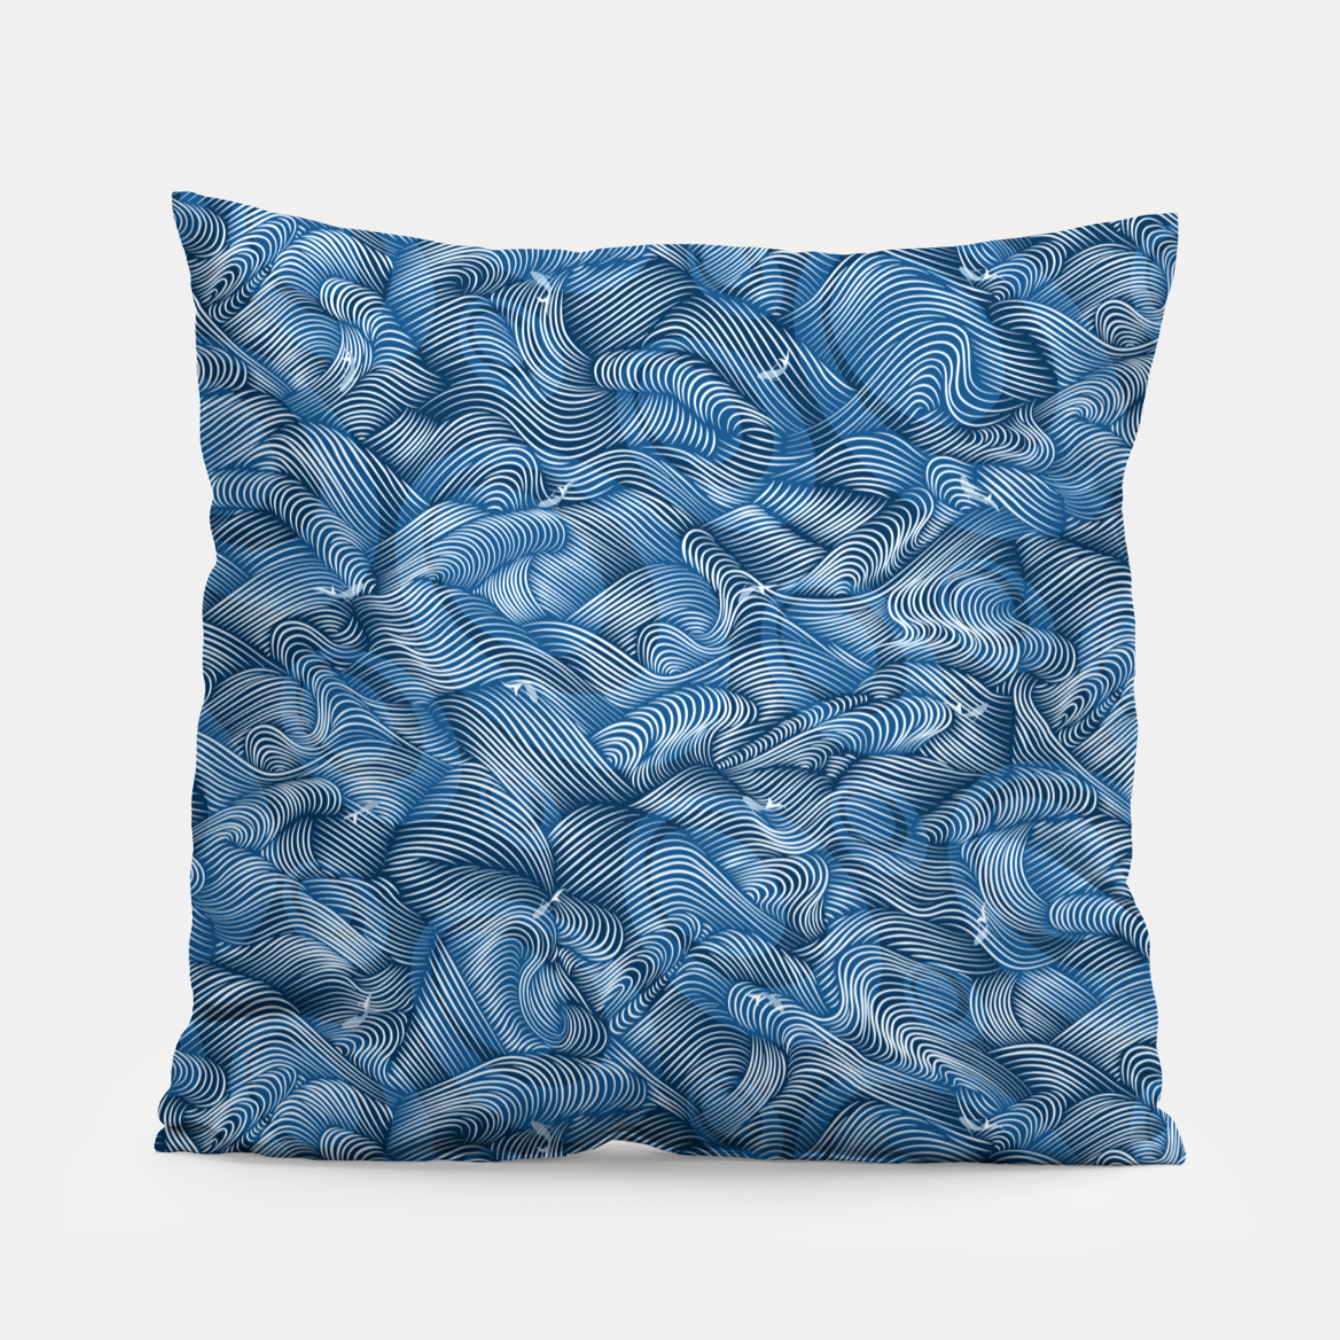 Foto Slippery Fishes Floating in the Classic Blue Waves Pillow - Live Heroes